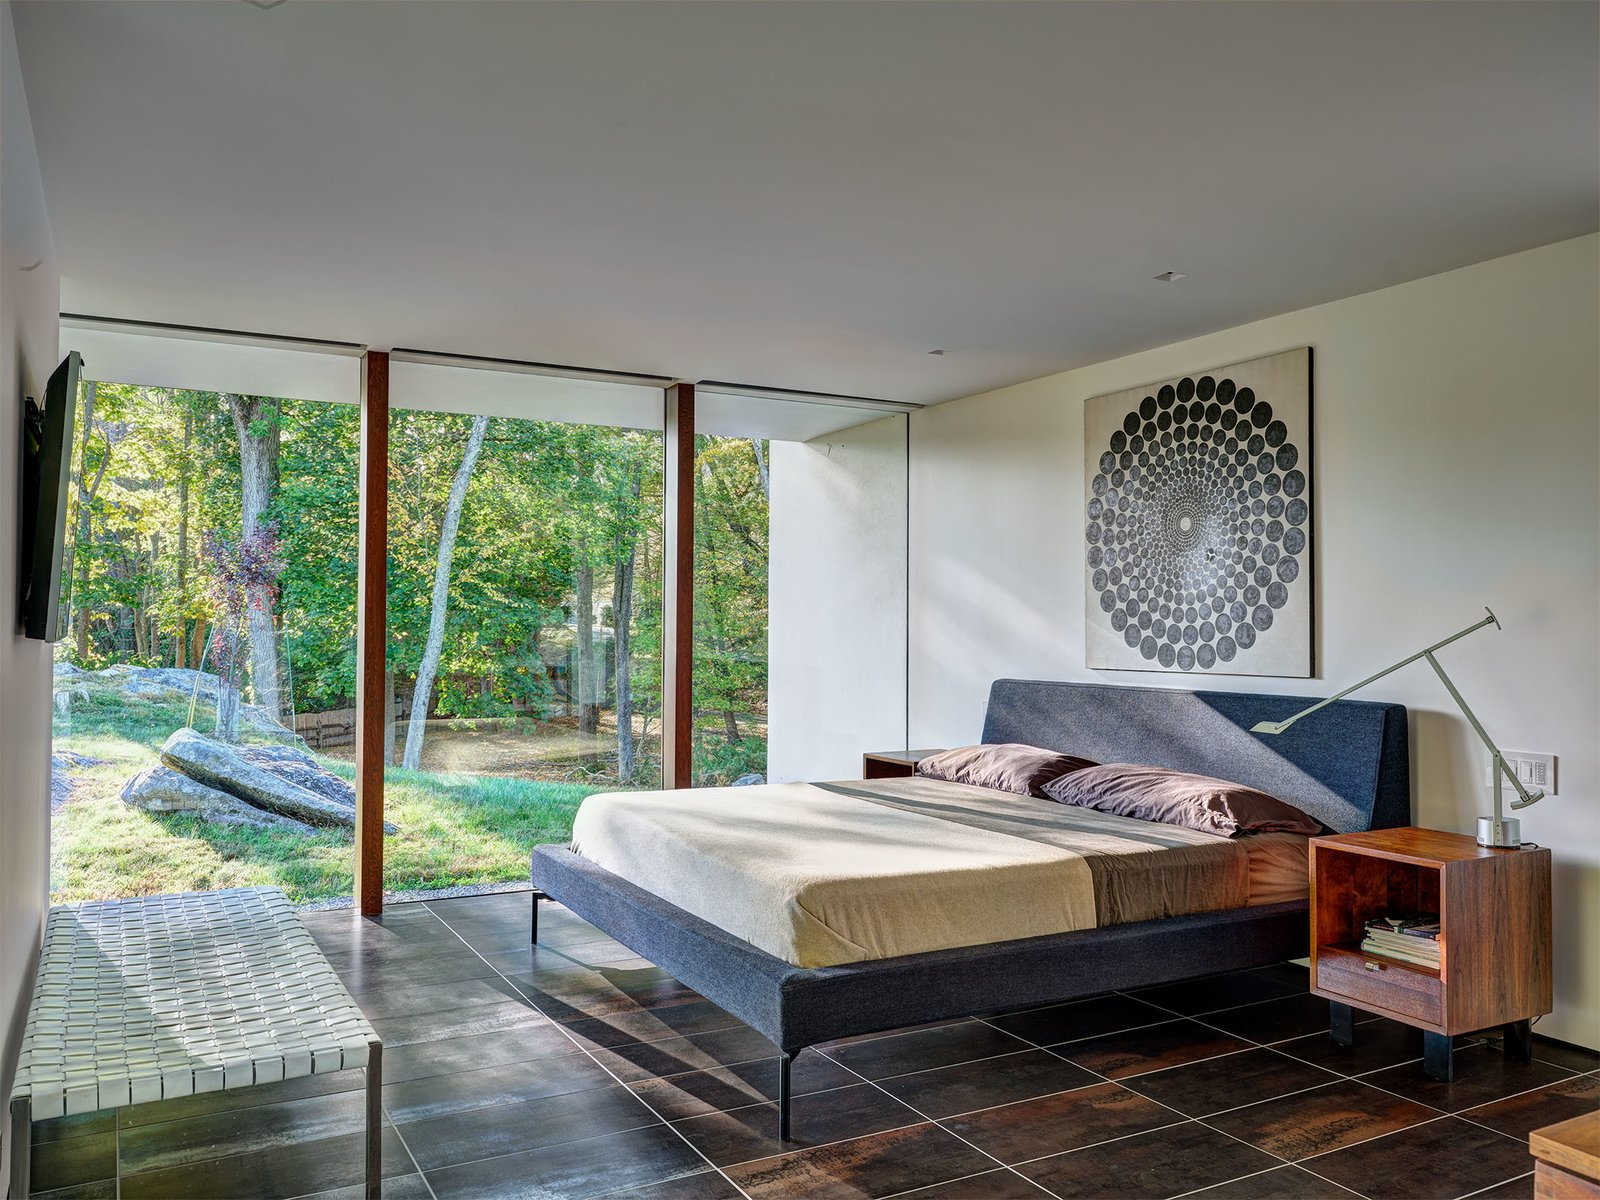 Bedroom of the Glen House by Richard Neutra